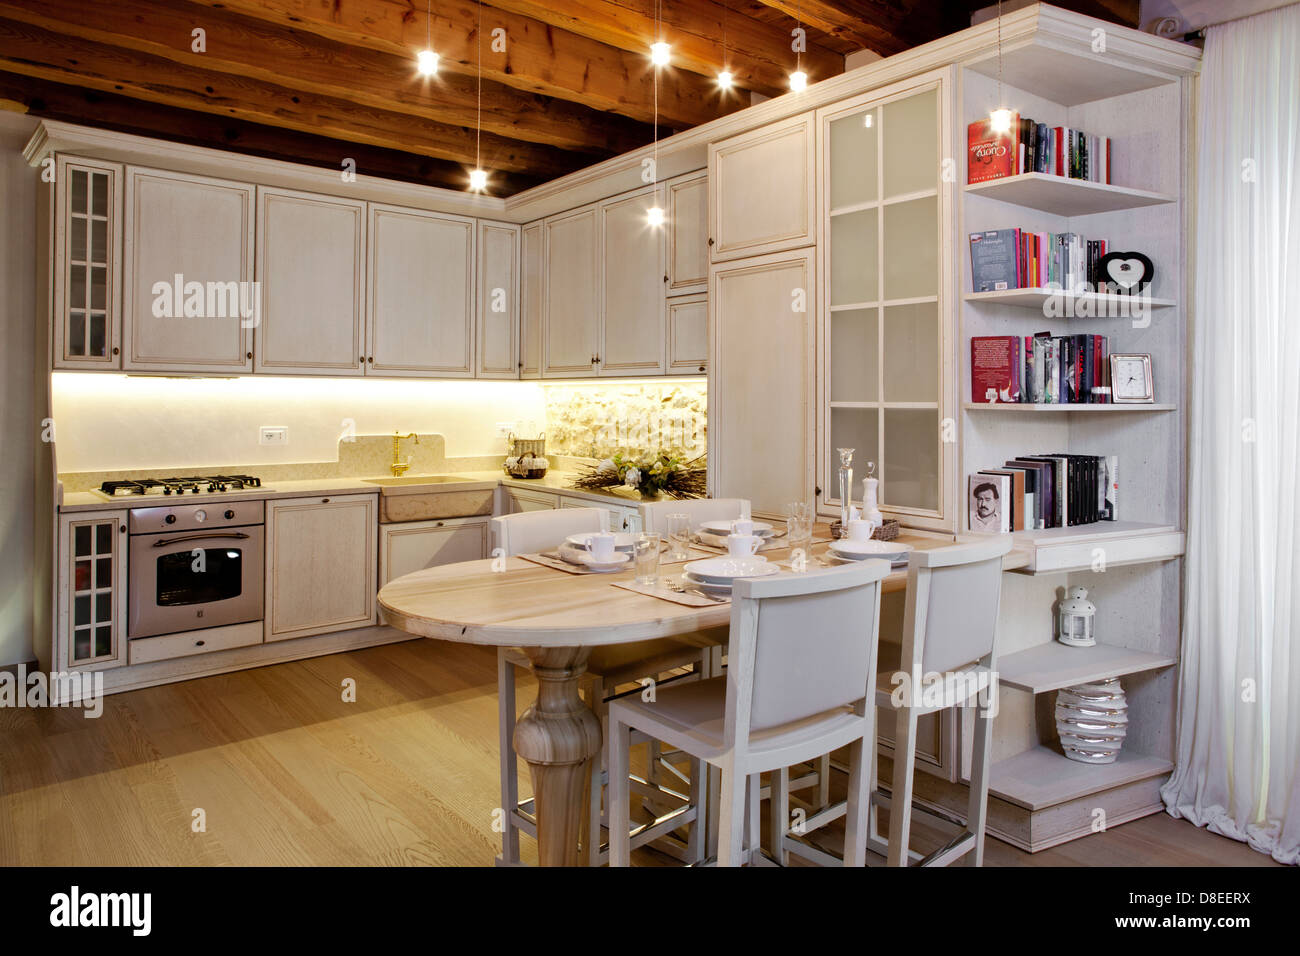 kitchen in old style with modern accessories - Stock Image